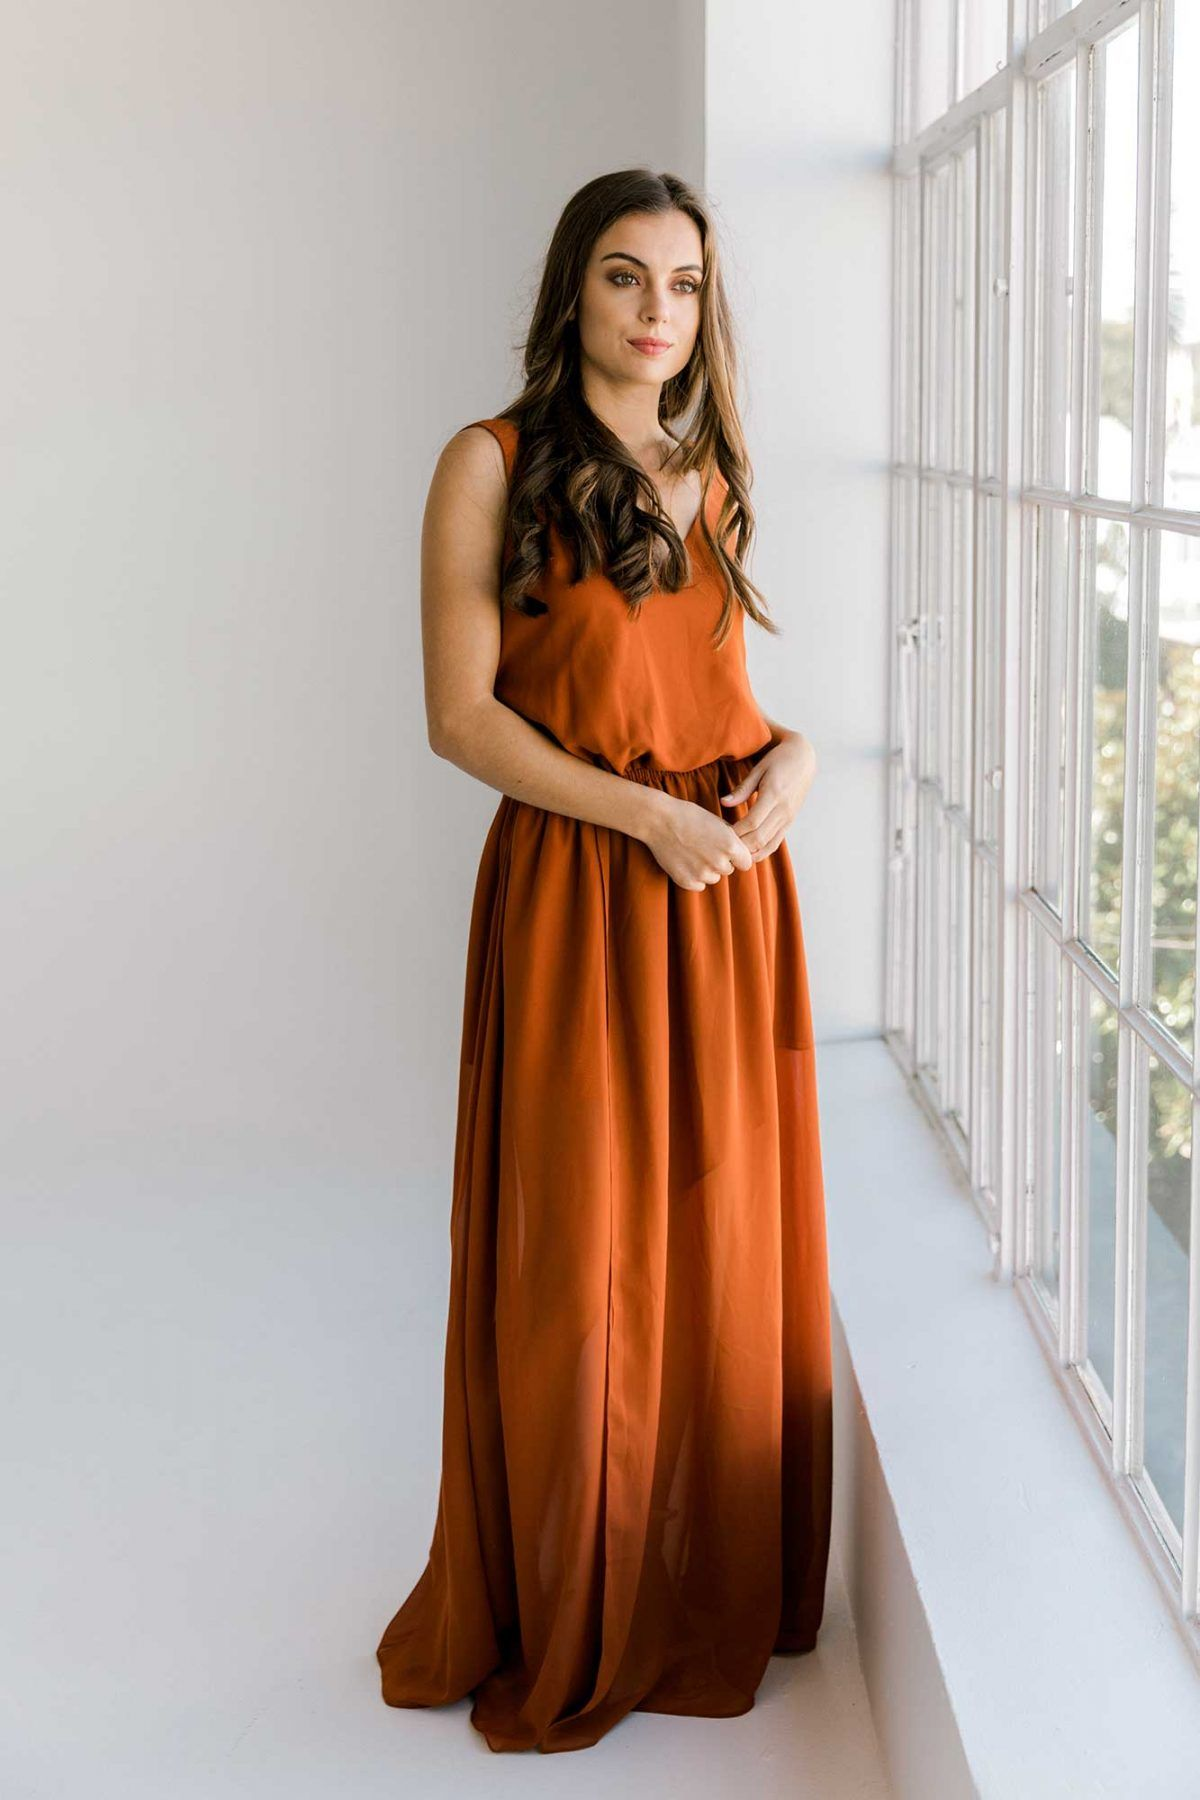 LolaDressBurntOrangeFront in 2020 Maxi dress, Burnt